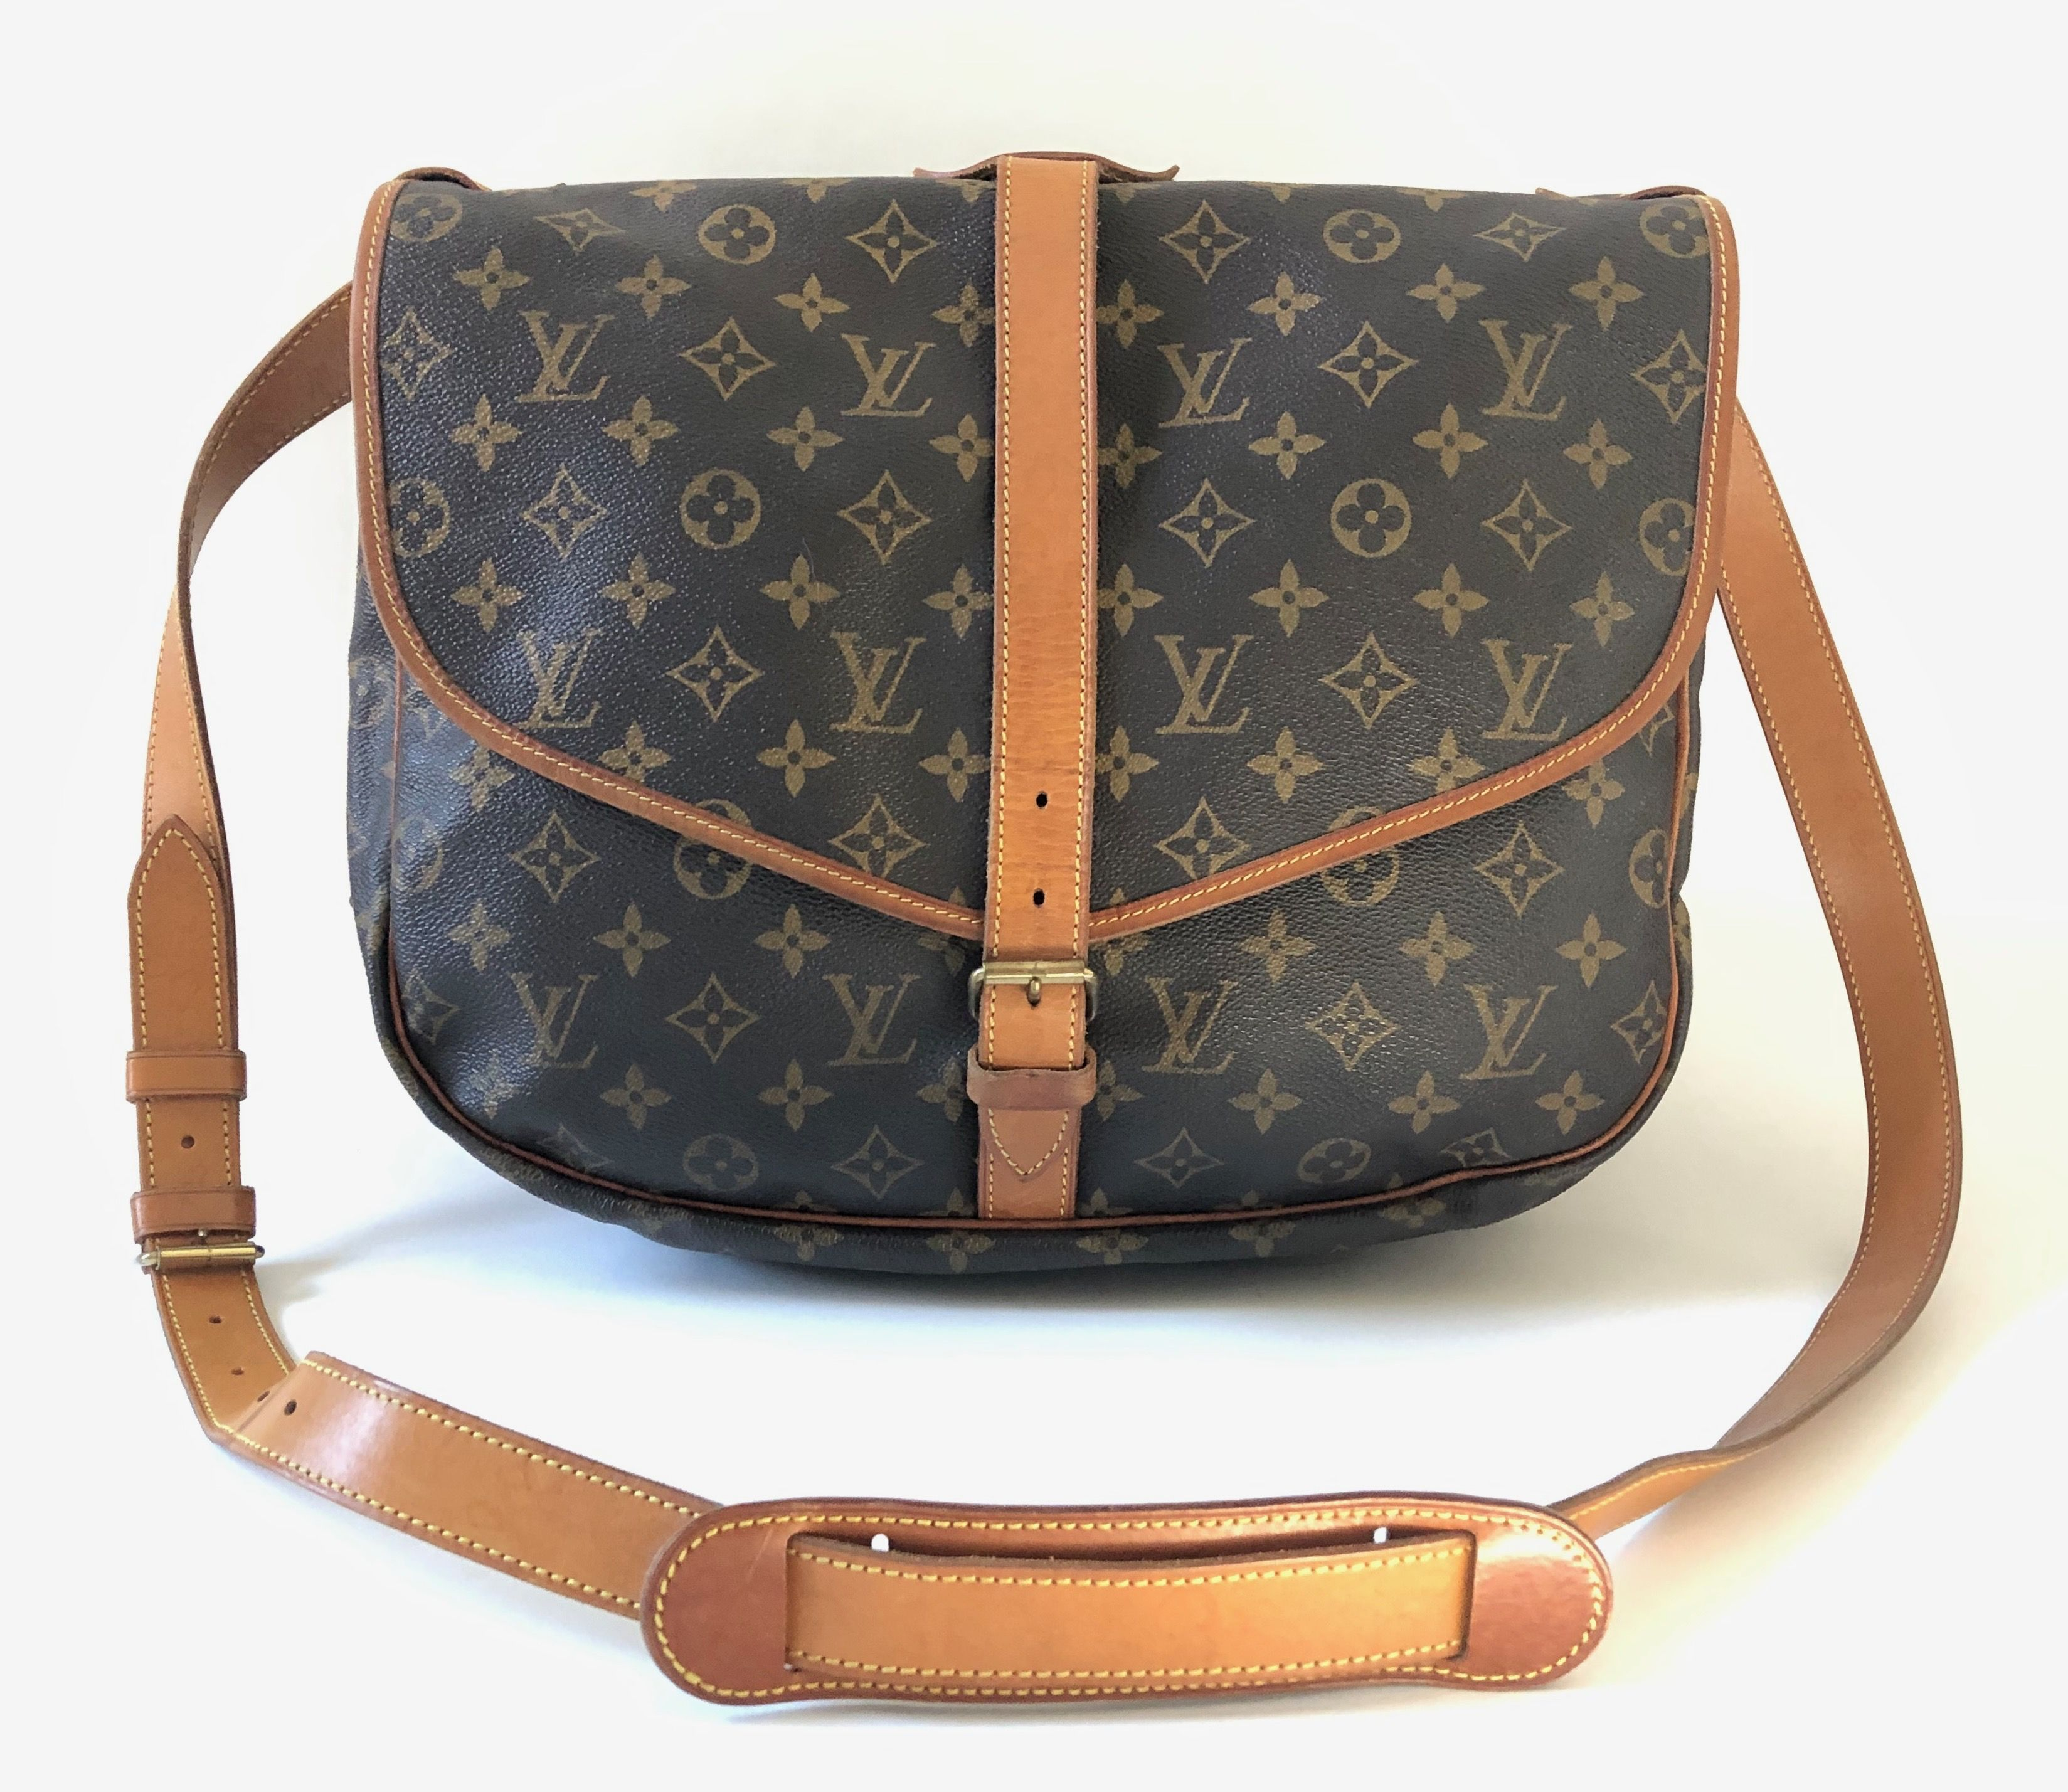 b8adef07031 Authentic Gucci brown GG woven canvas zippered cross body shoulder bag with  ribbon strap. Very popular cross body model!